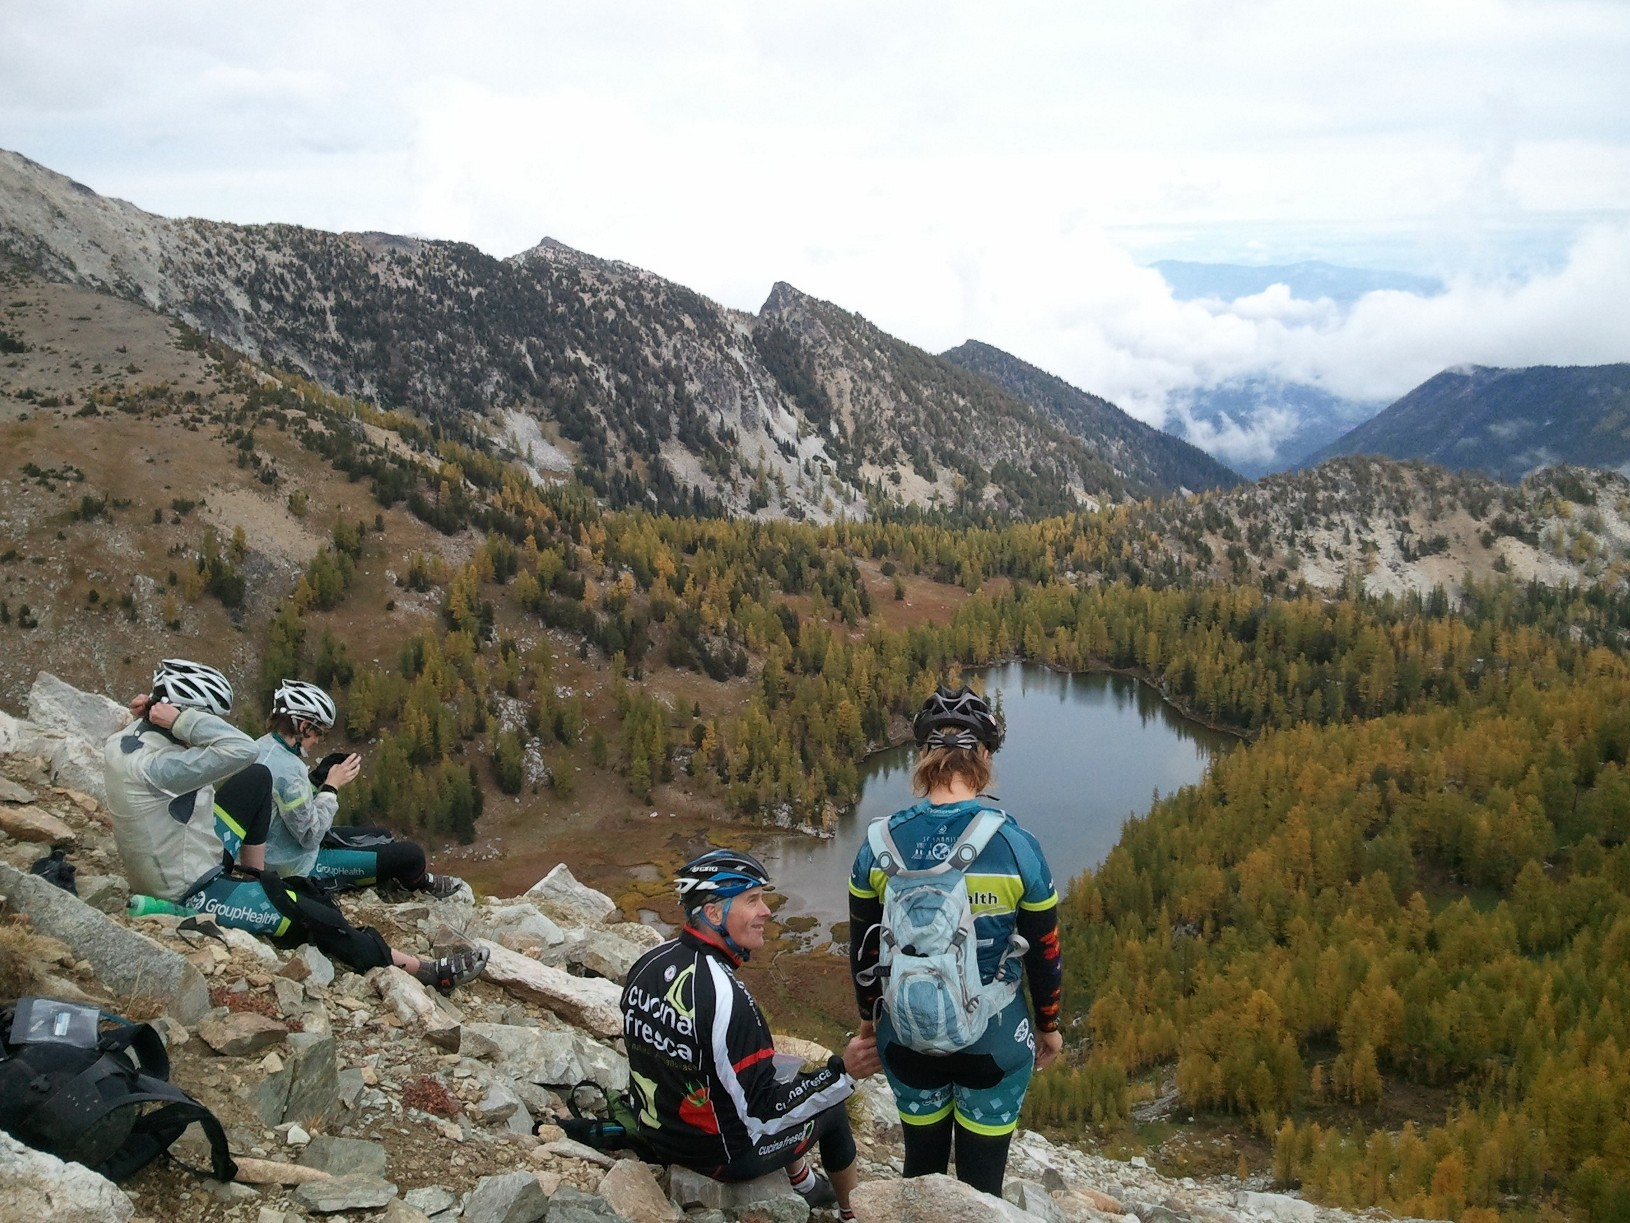 The view of larch trees and alpine lakes at Angels Staircase, a Methow Valley mountain bike ride that climbs above 7000ft.